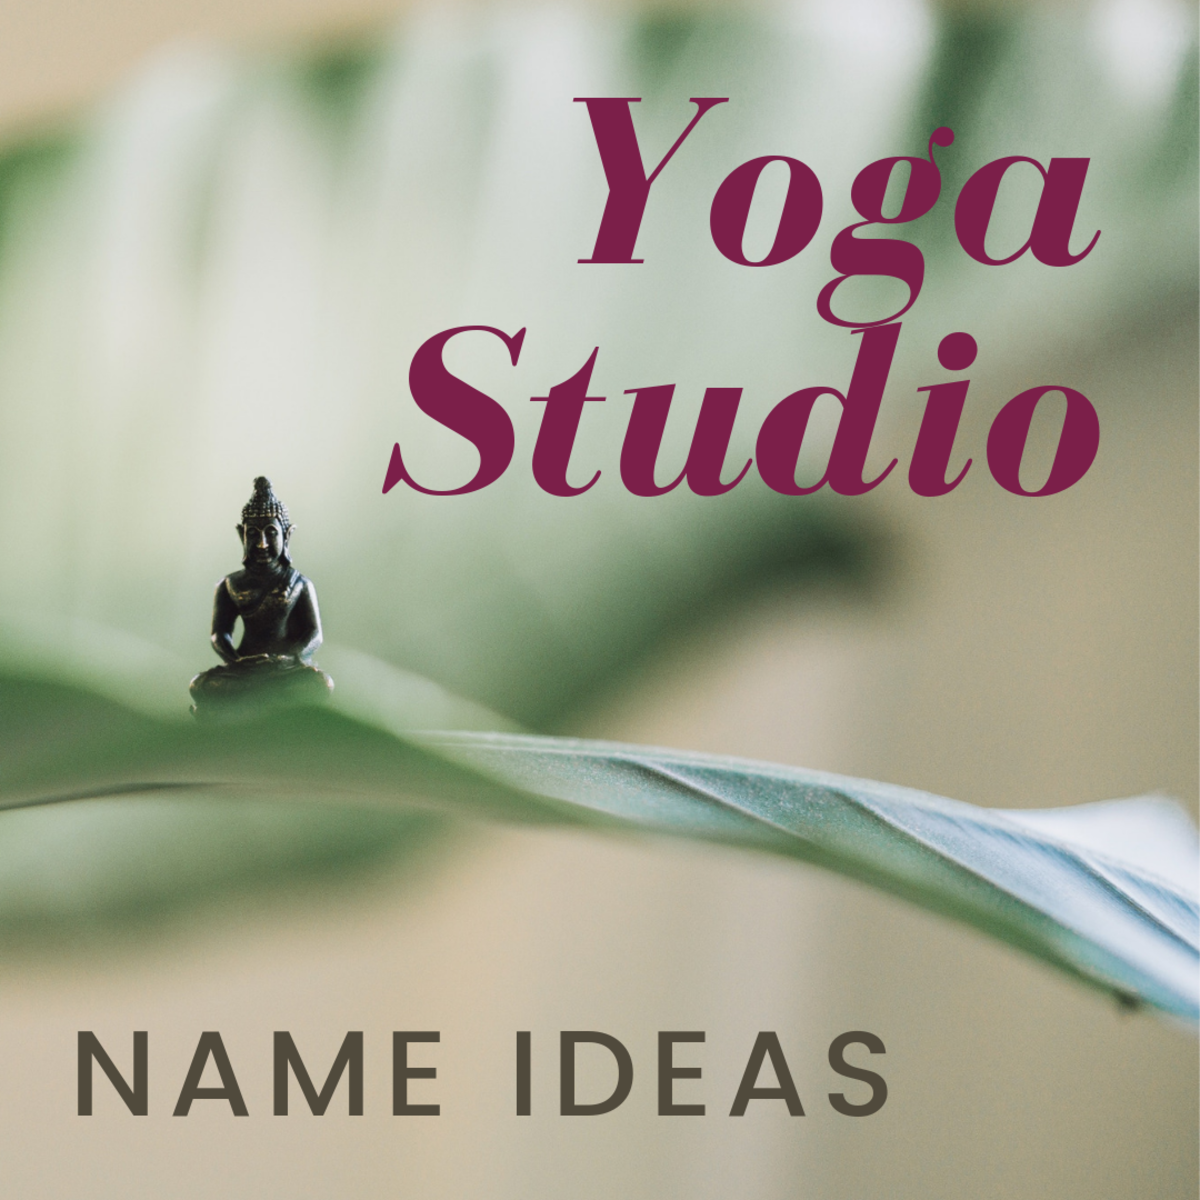 Yoga Studio Name Ideas